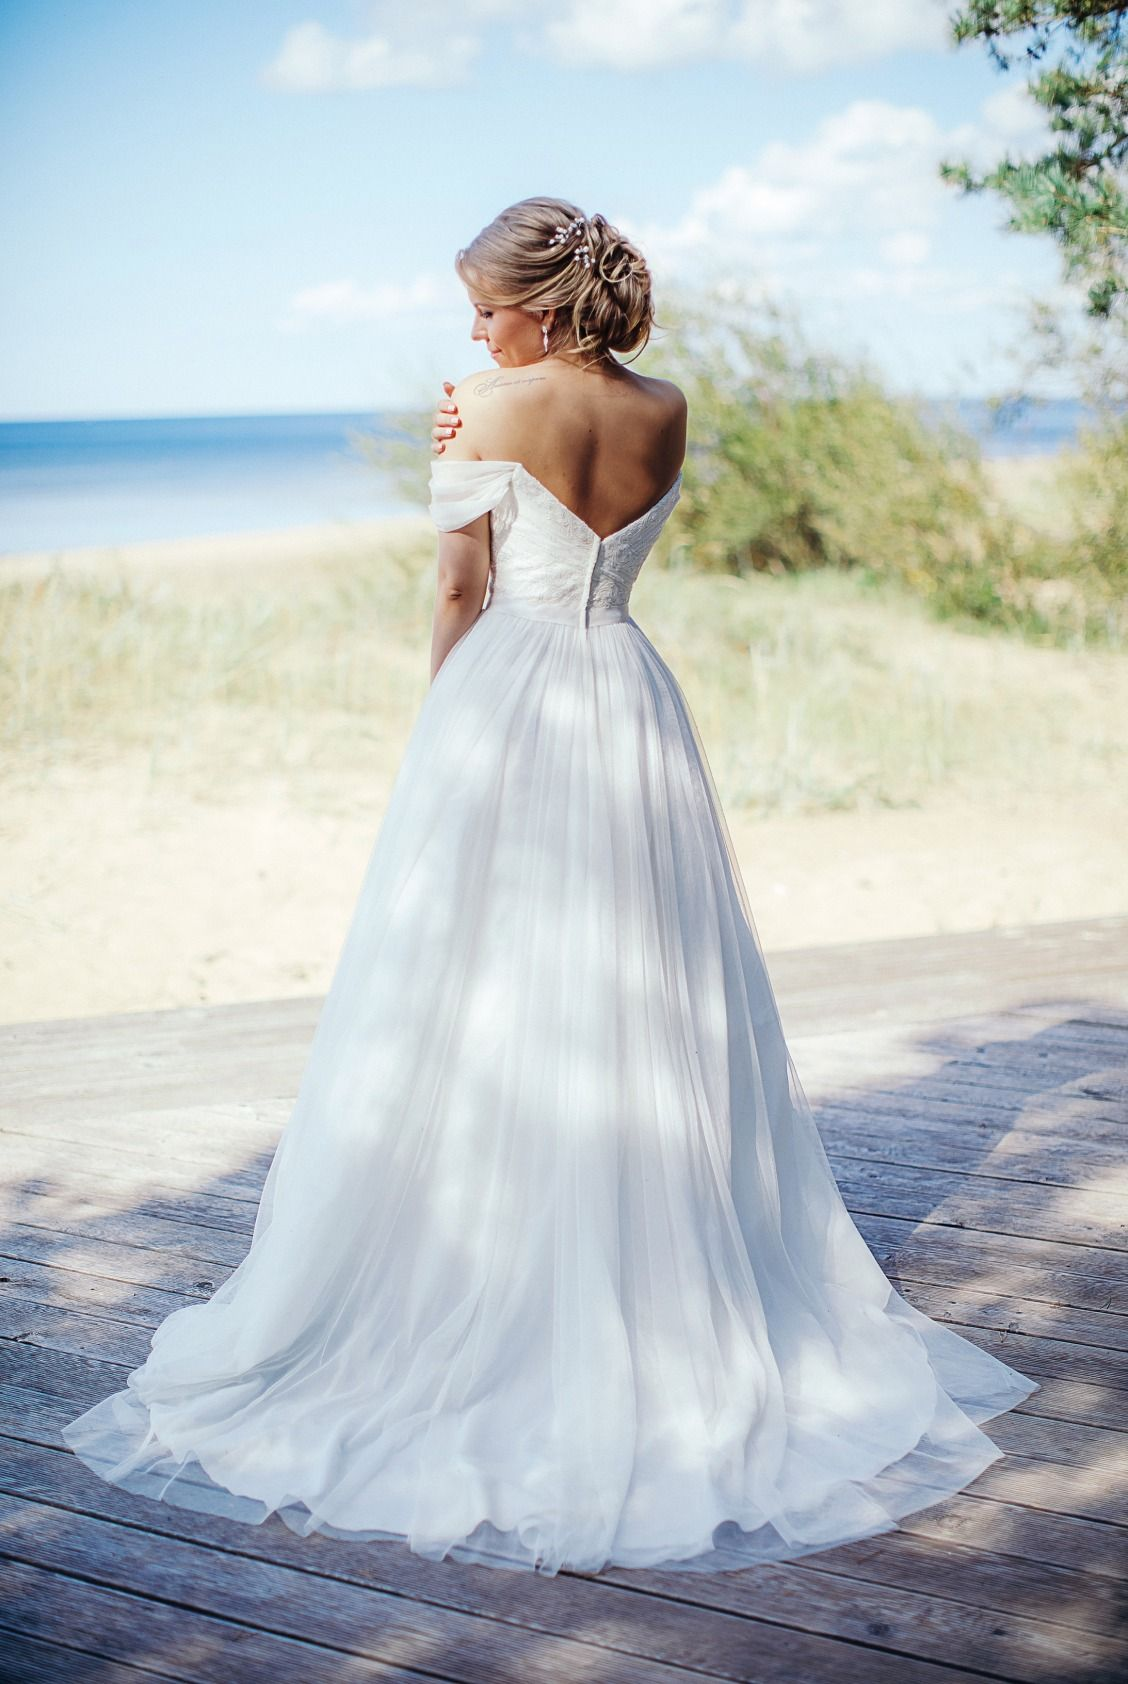 A ball gown is an unexpected choice for a beach wedding dress...but ...